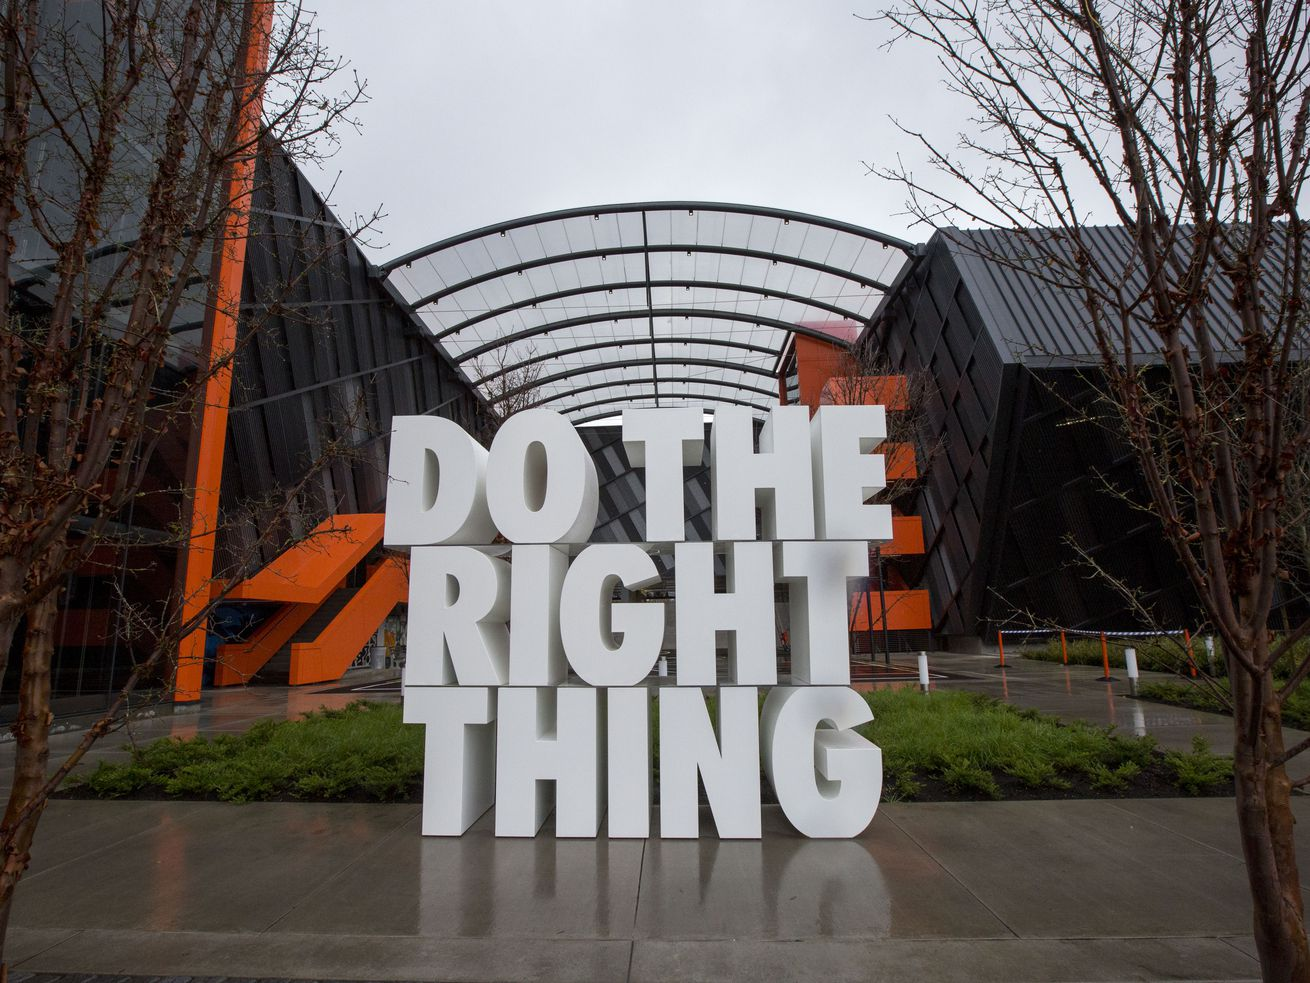 A giant sculpture at the Nike headquarters in Beaverton, Oregon.